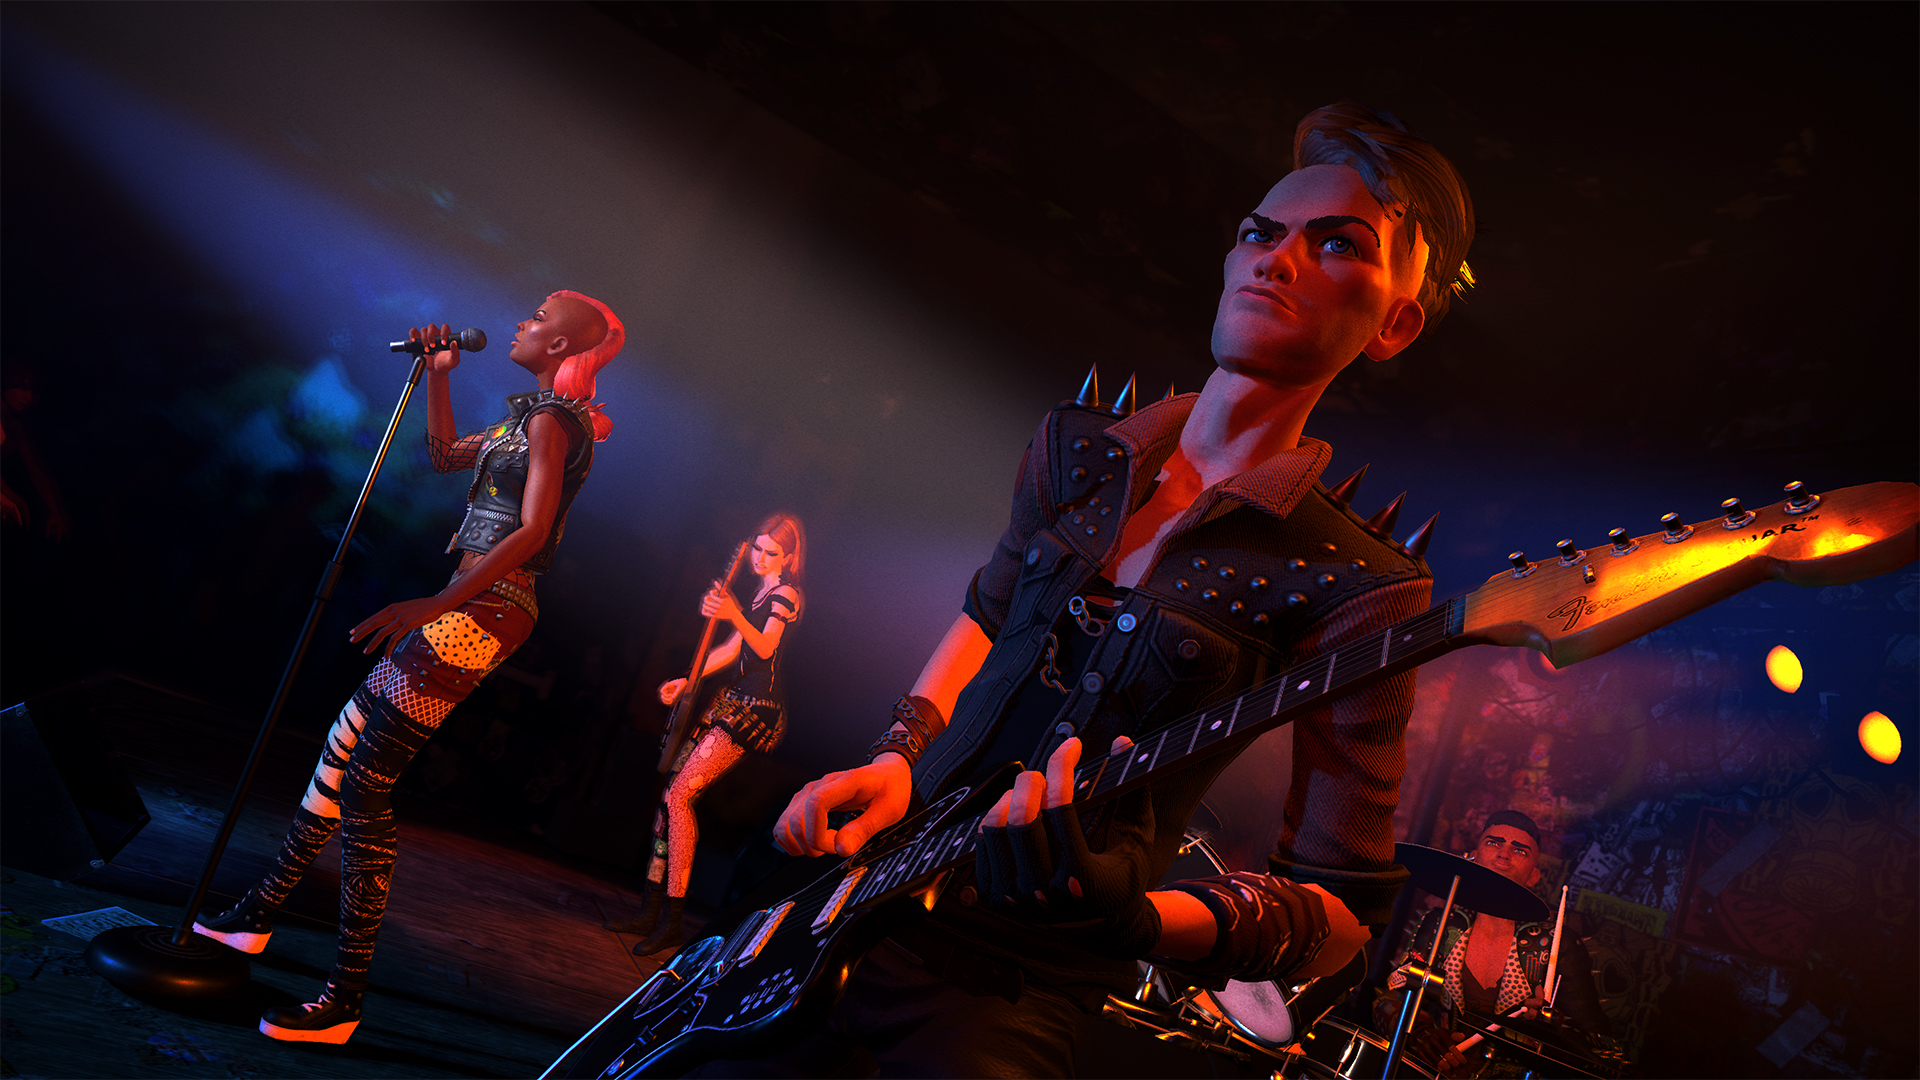 Developer Harmonix is bringing Rock Band 4 to Windows PC.